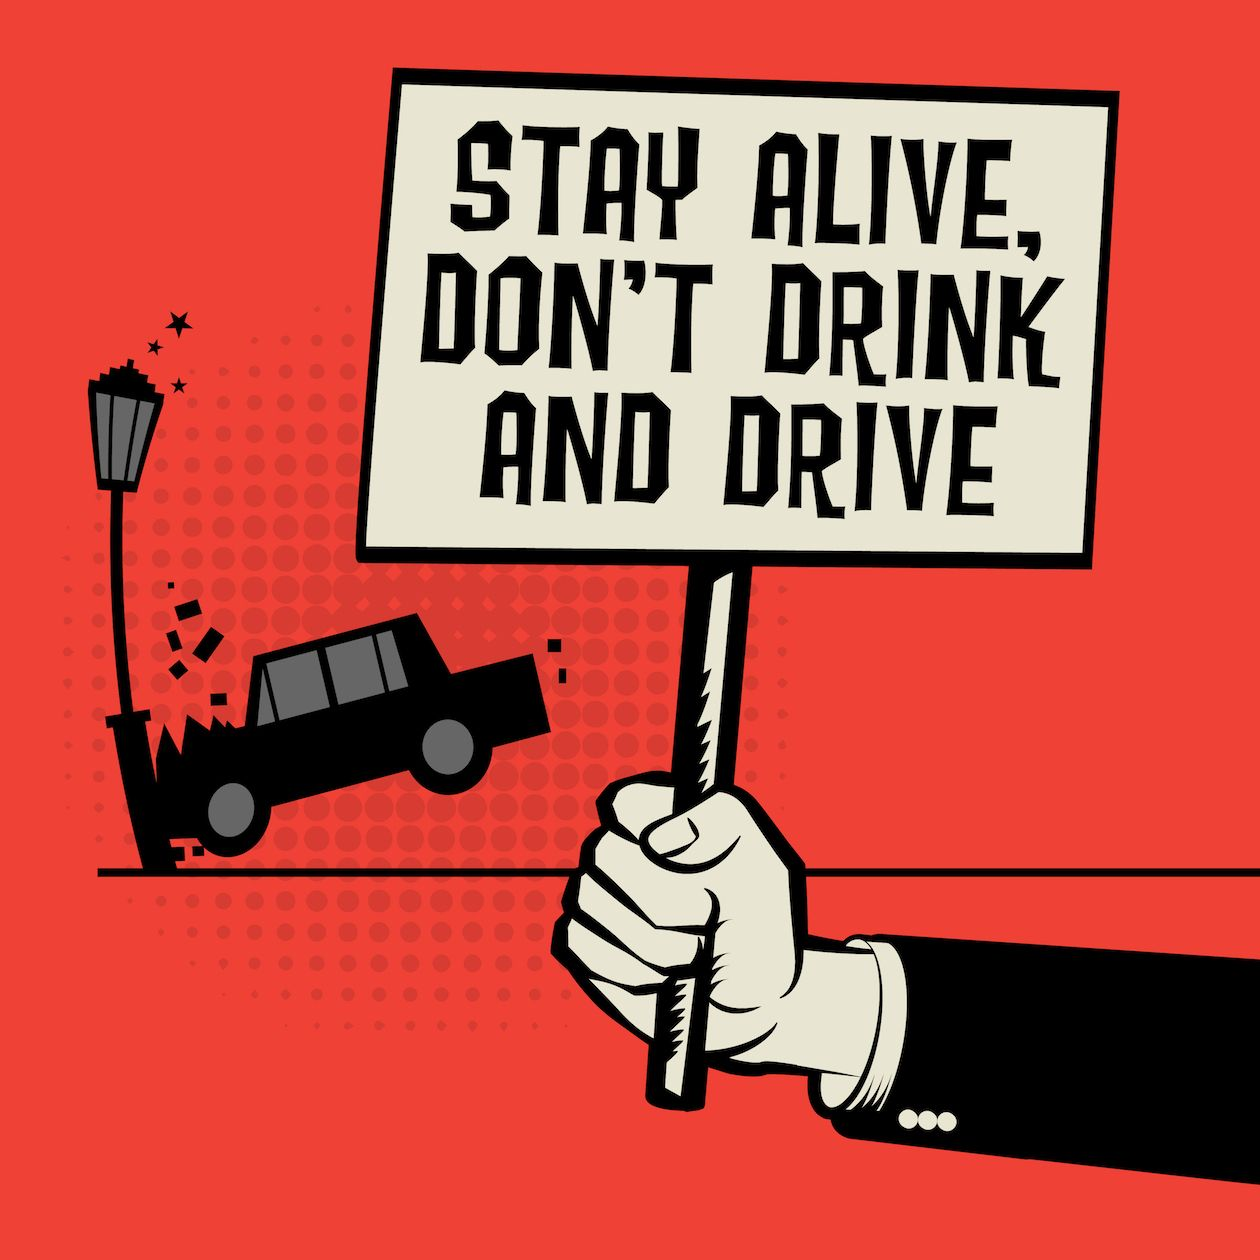 stay alive don't drink and drive